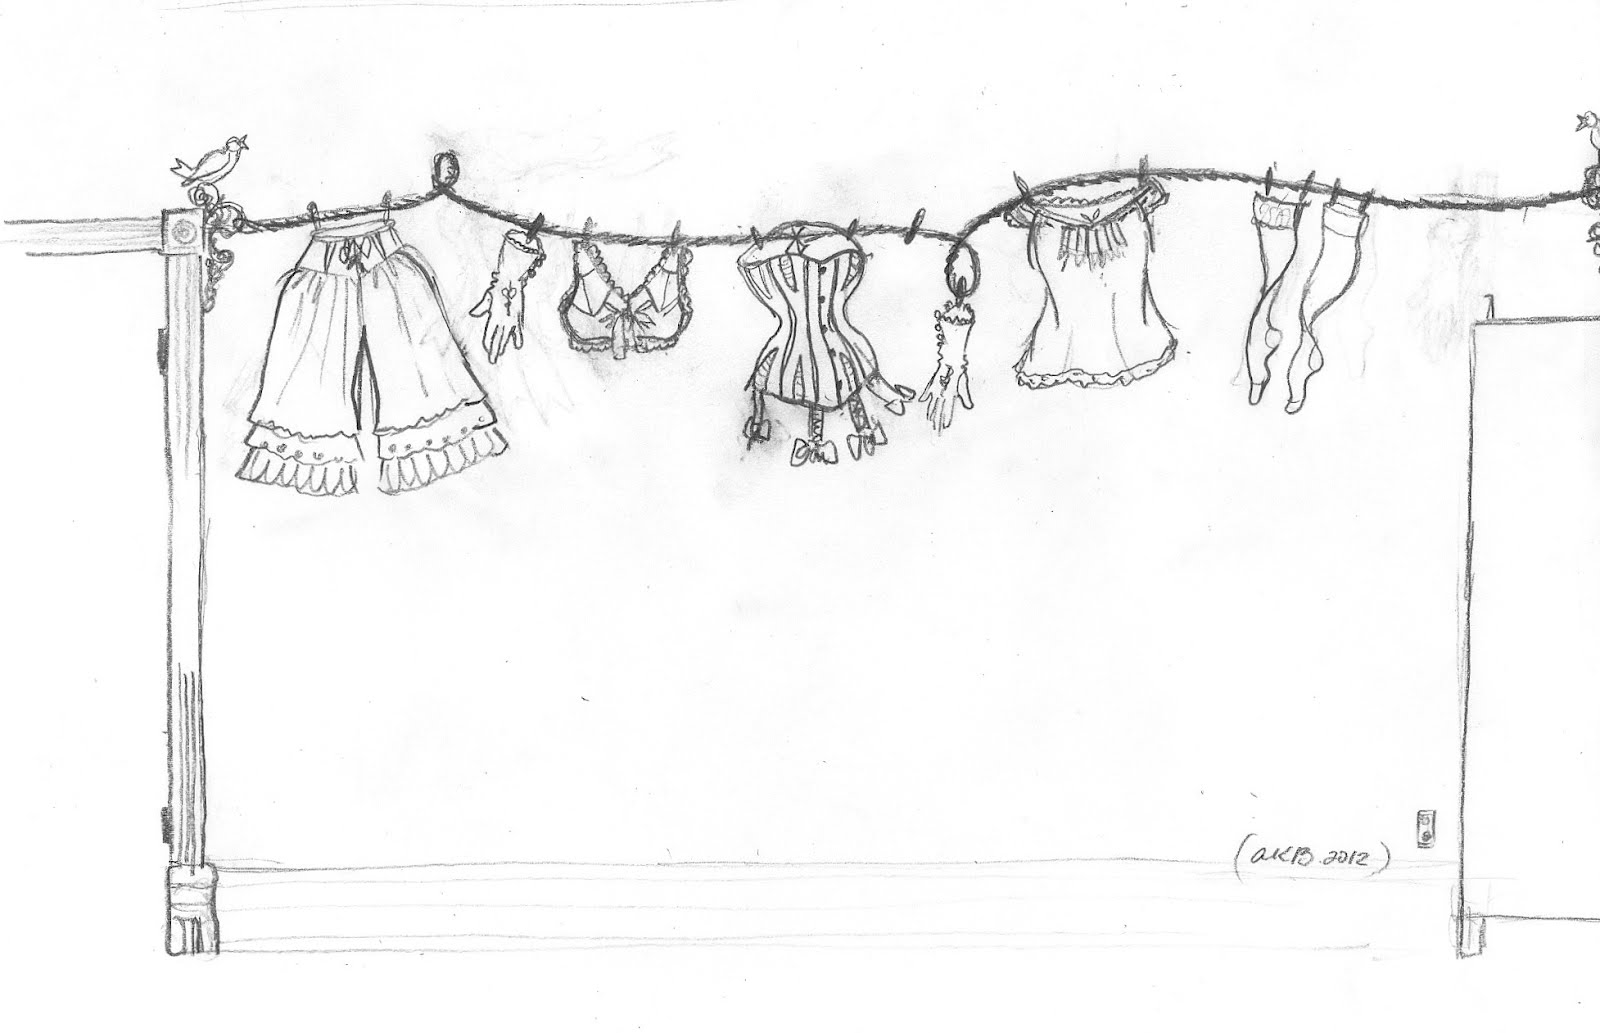 The Dusty Victorian: Victorian Underwear in my Laundry